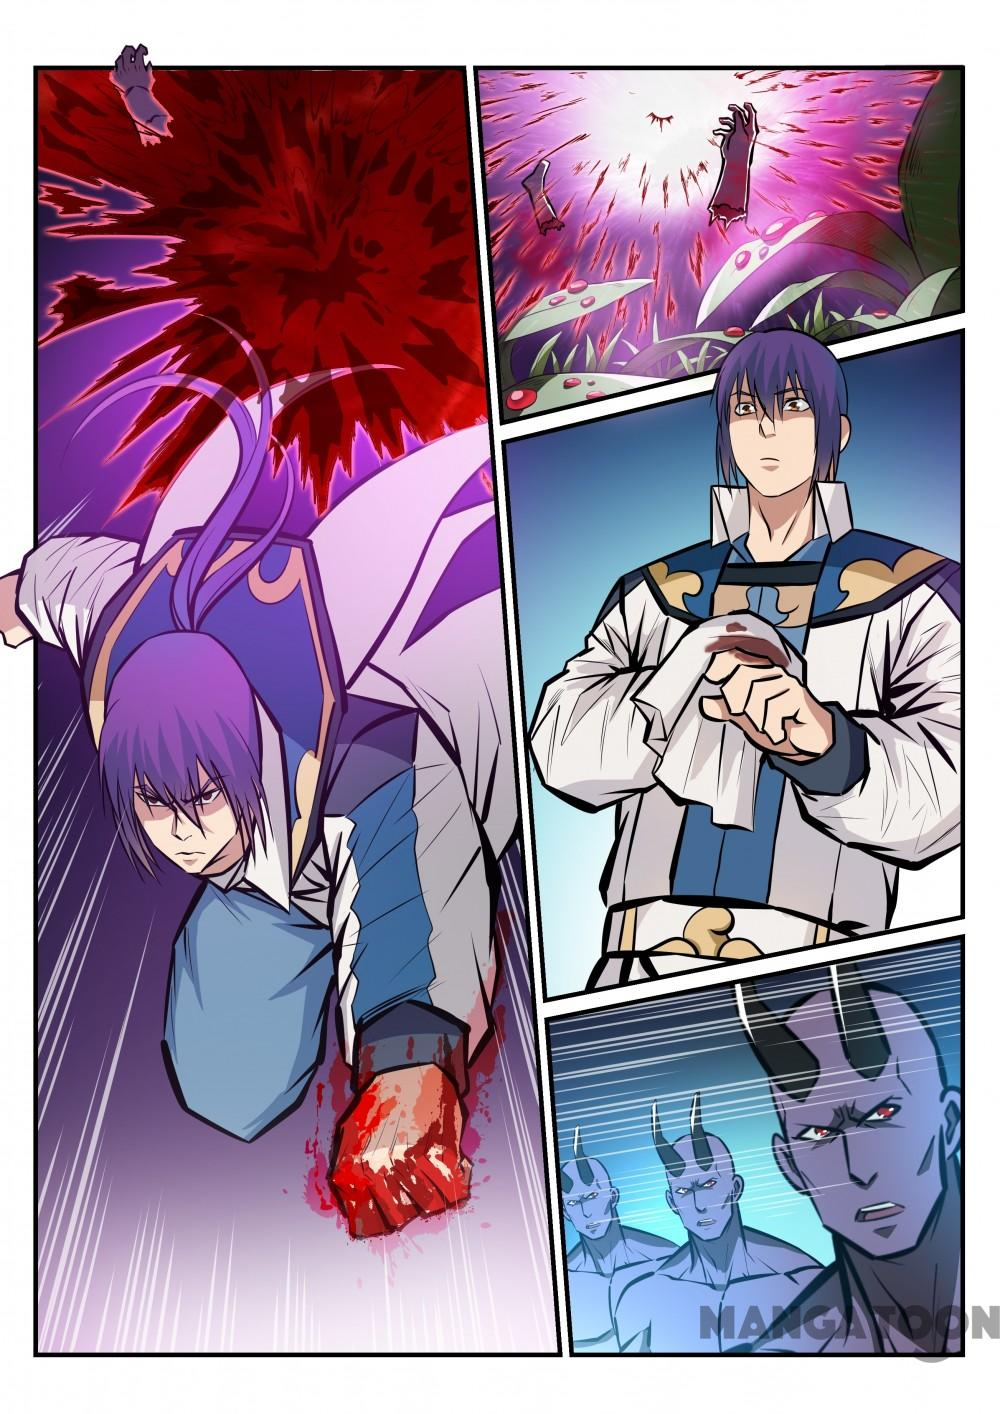 Apotheosis ( Bai Lian Cheng Shen ) Chapter 232 Full in EnGLISH